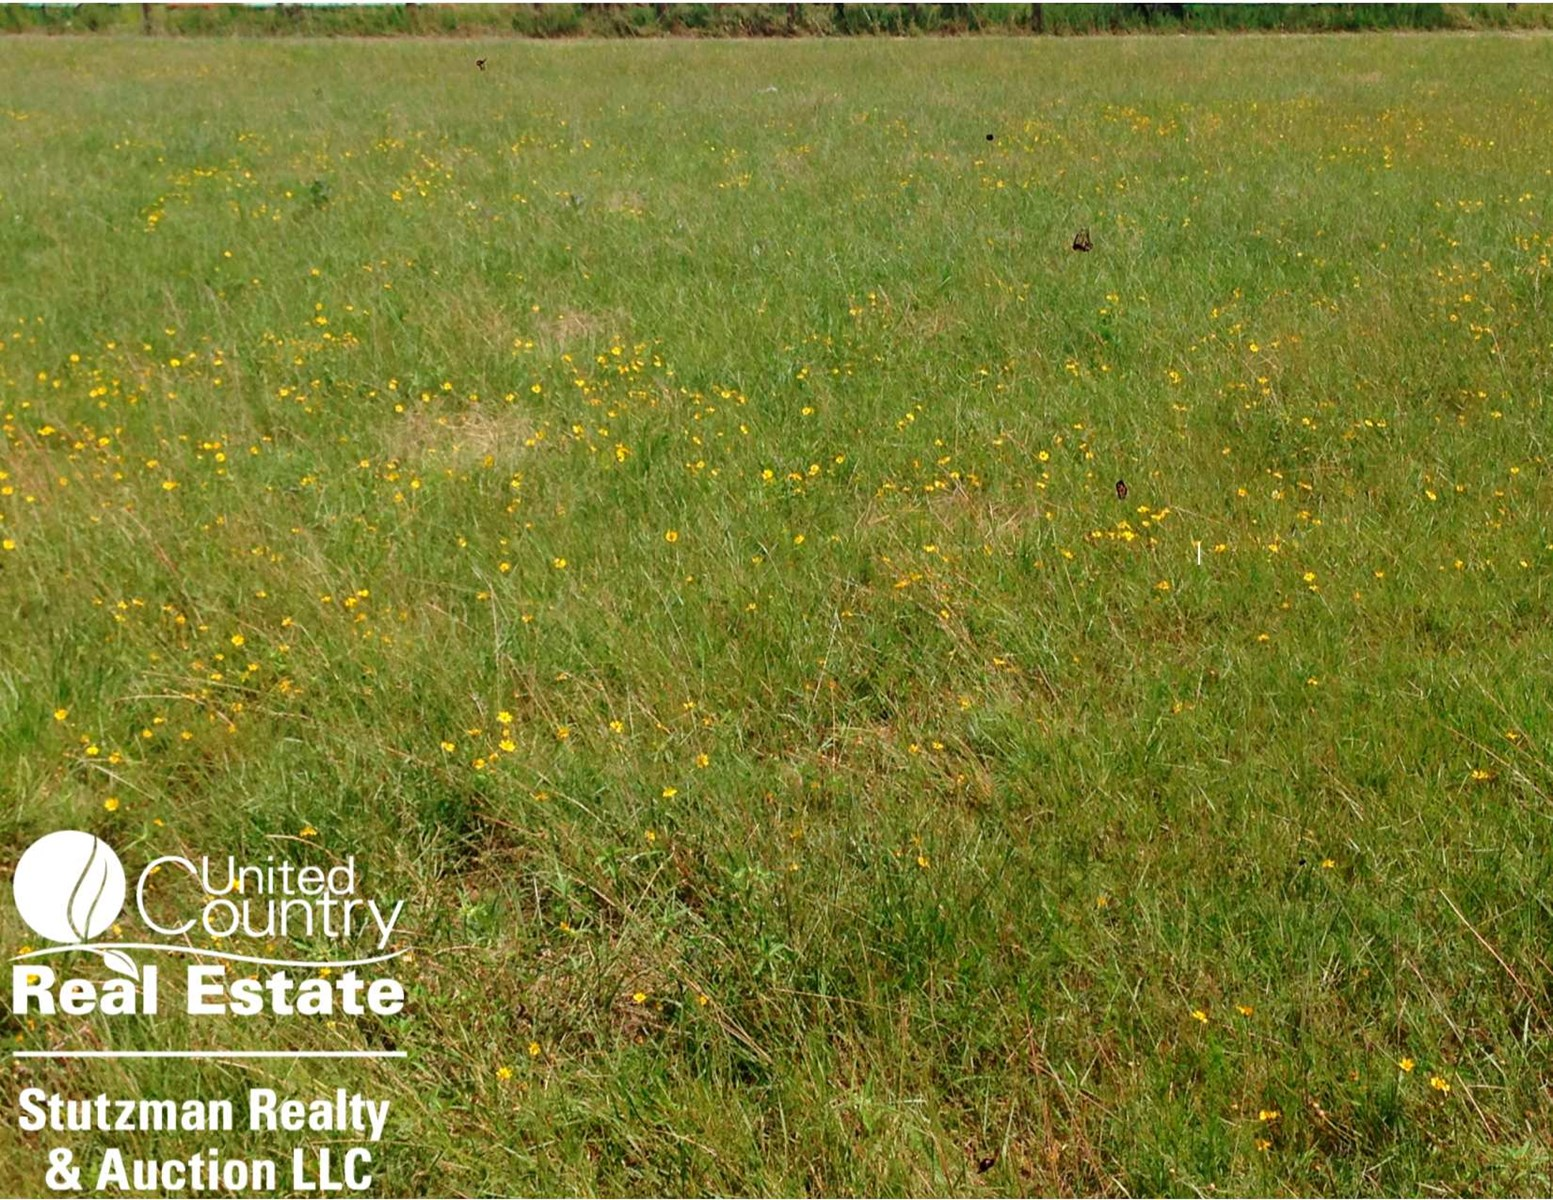 LOT FOR SALE IN SOUTHWEST KANSAS